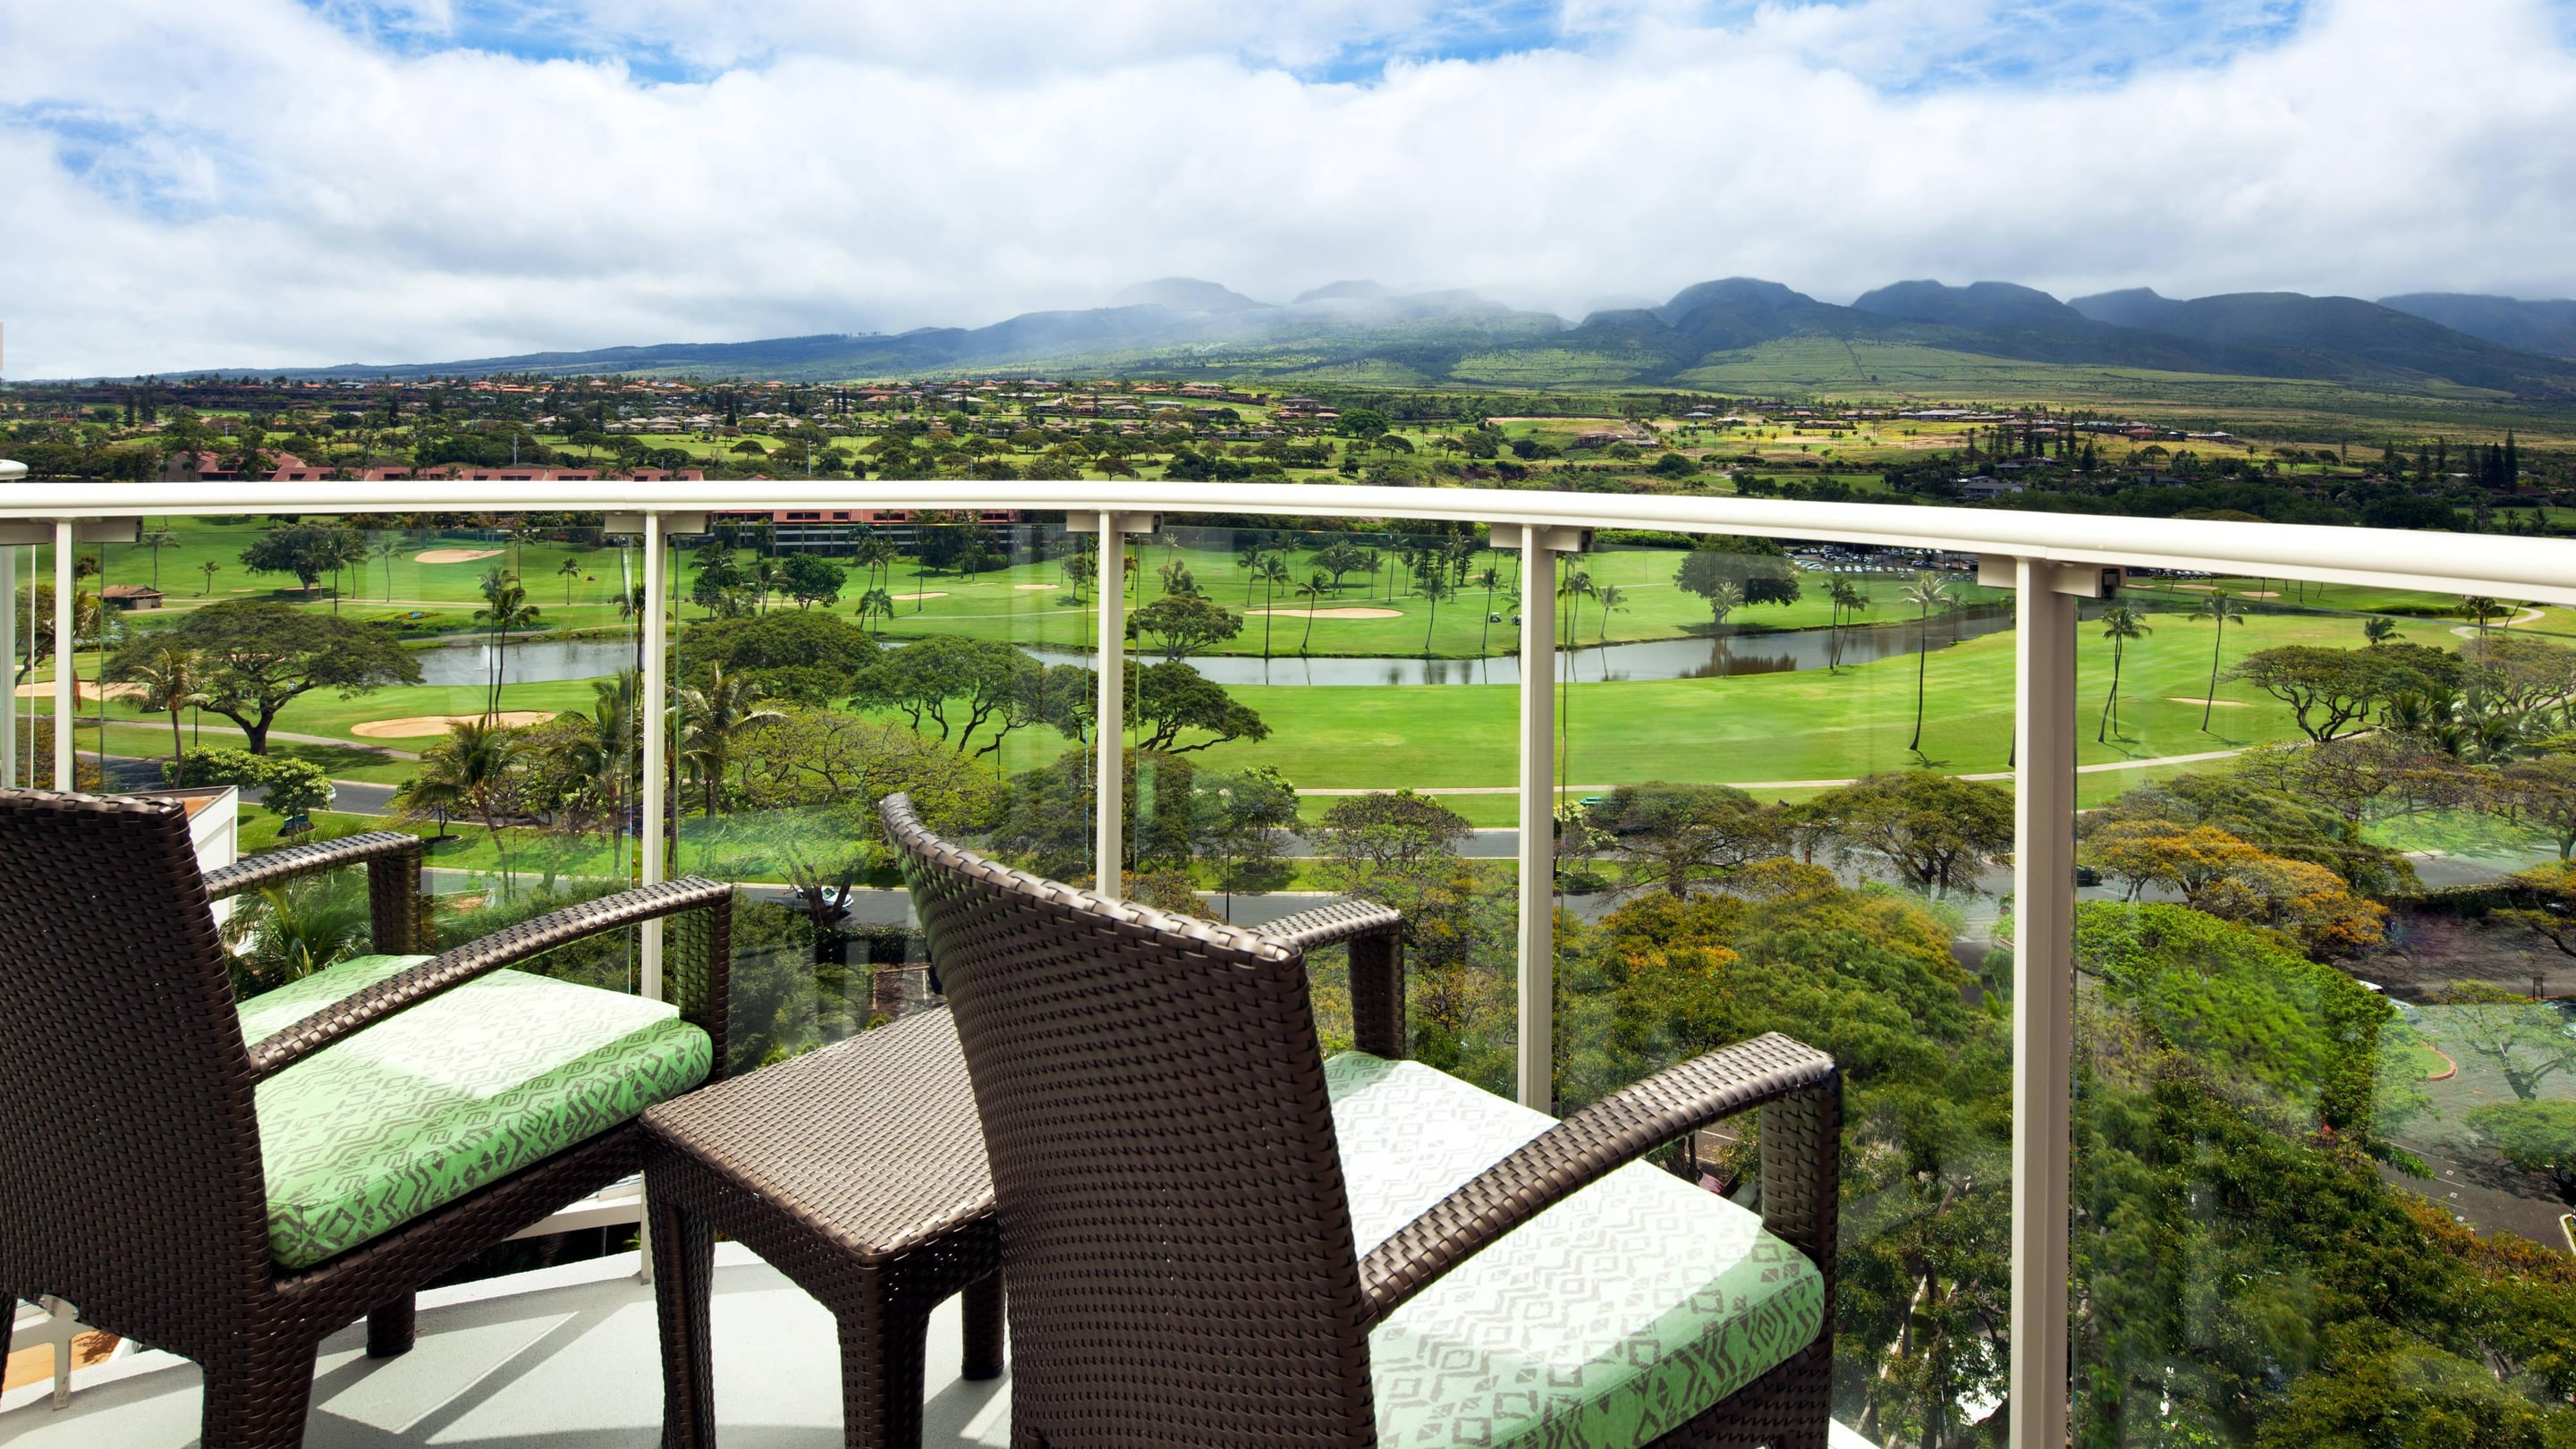 Premium Resort View guest room balcony with two chairs overlooking a golf course.